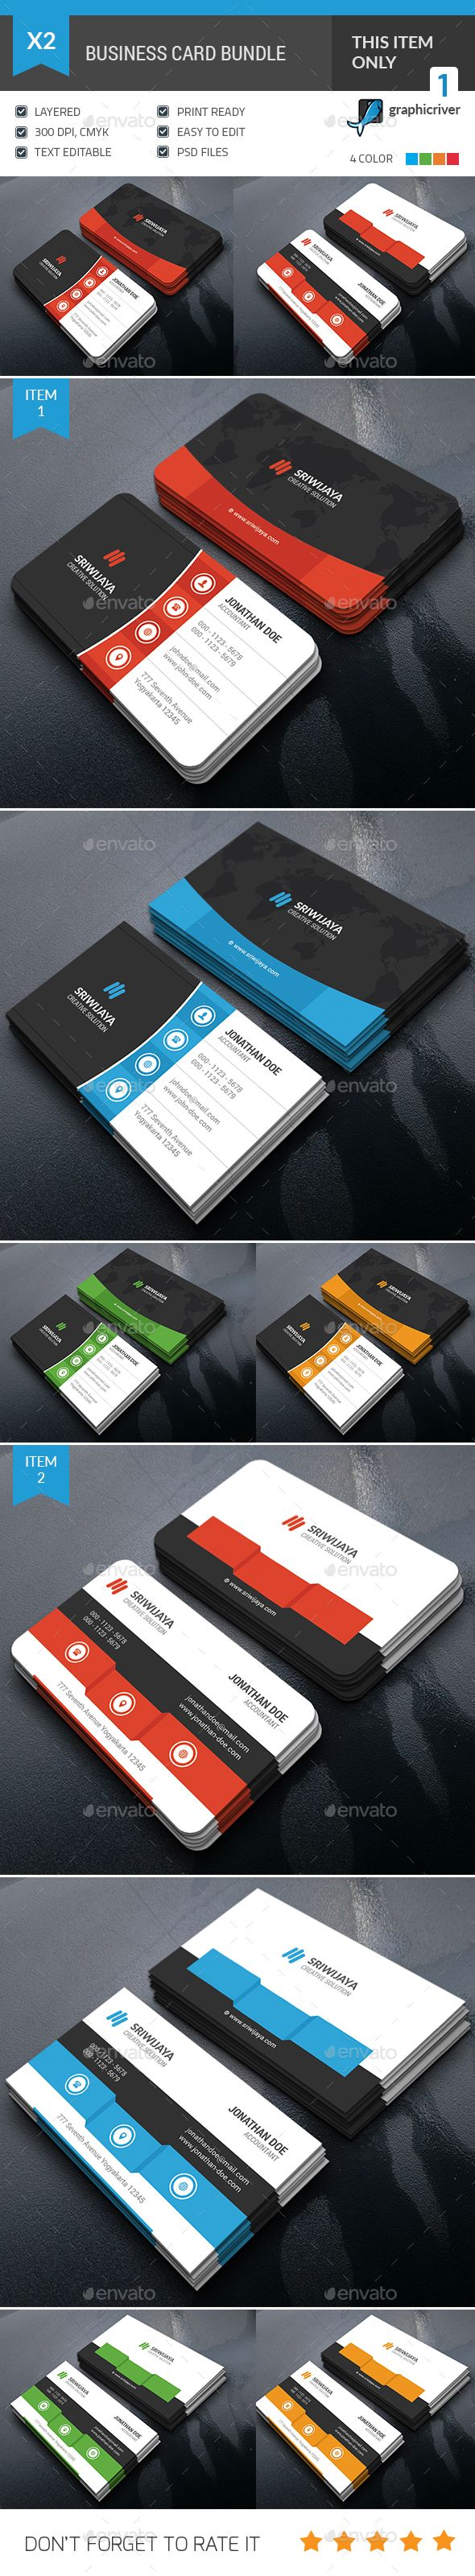 Business Card Bundle Template PSD #design Download: http://graphicriver.net/item/business-card-bundle/13616107?ref=ksioks